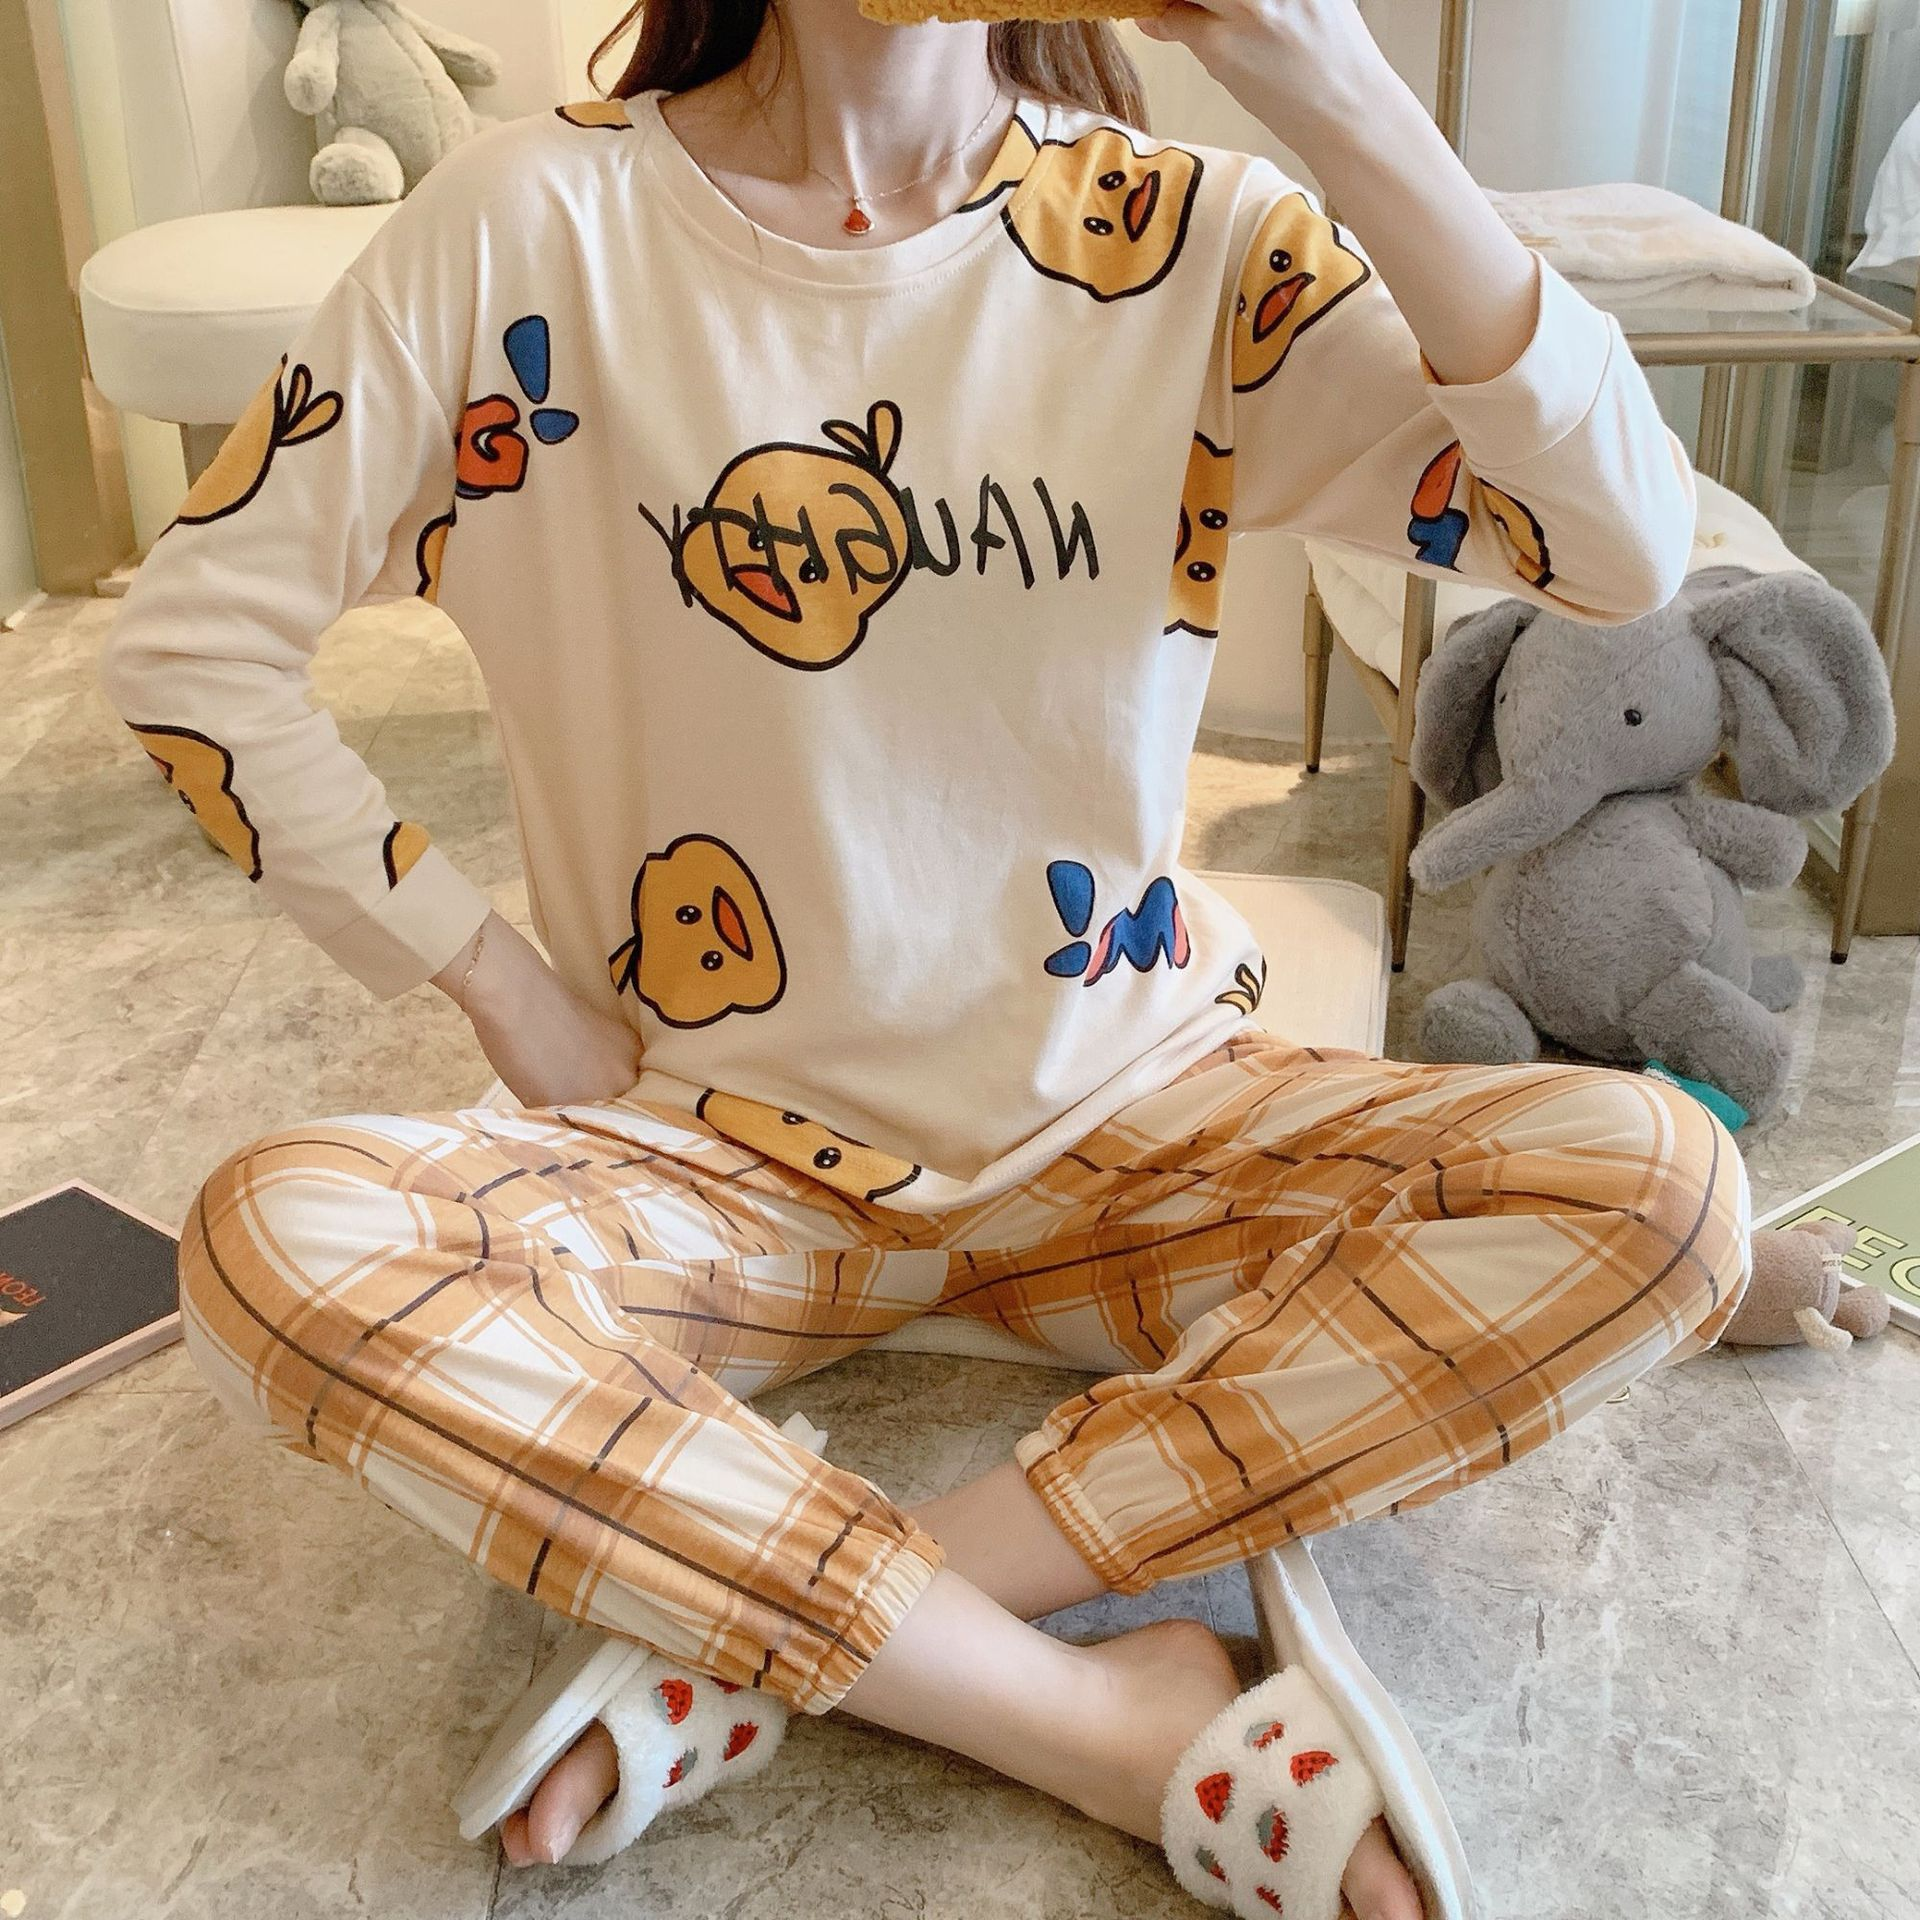 Wechat Business Hot Selling Long-sleeved Pullover Korean-style INS Sweet Women's Pajamas Tracksuit Piece 812 # Yellow. Duck. Sub